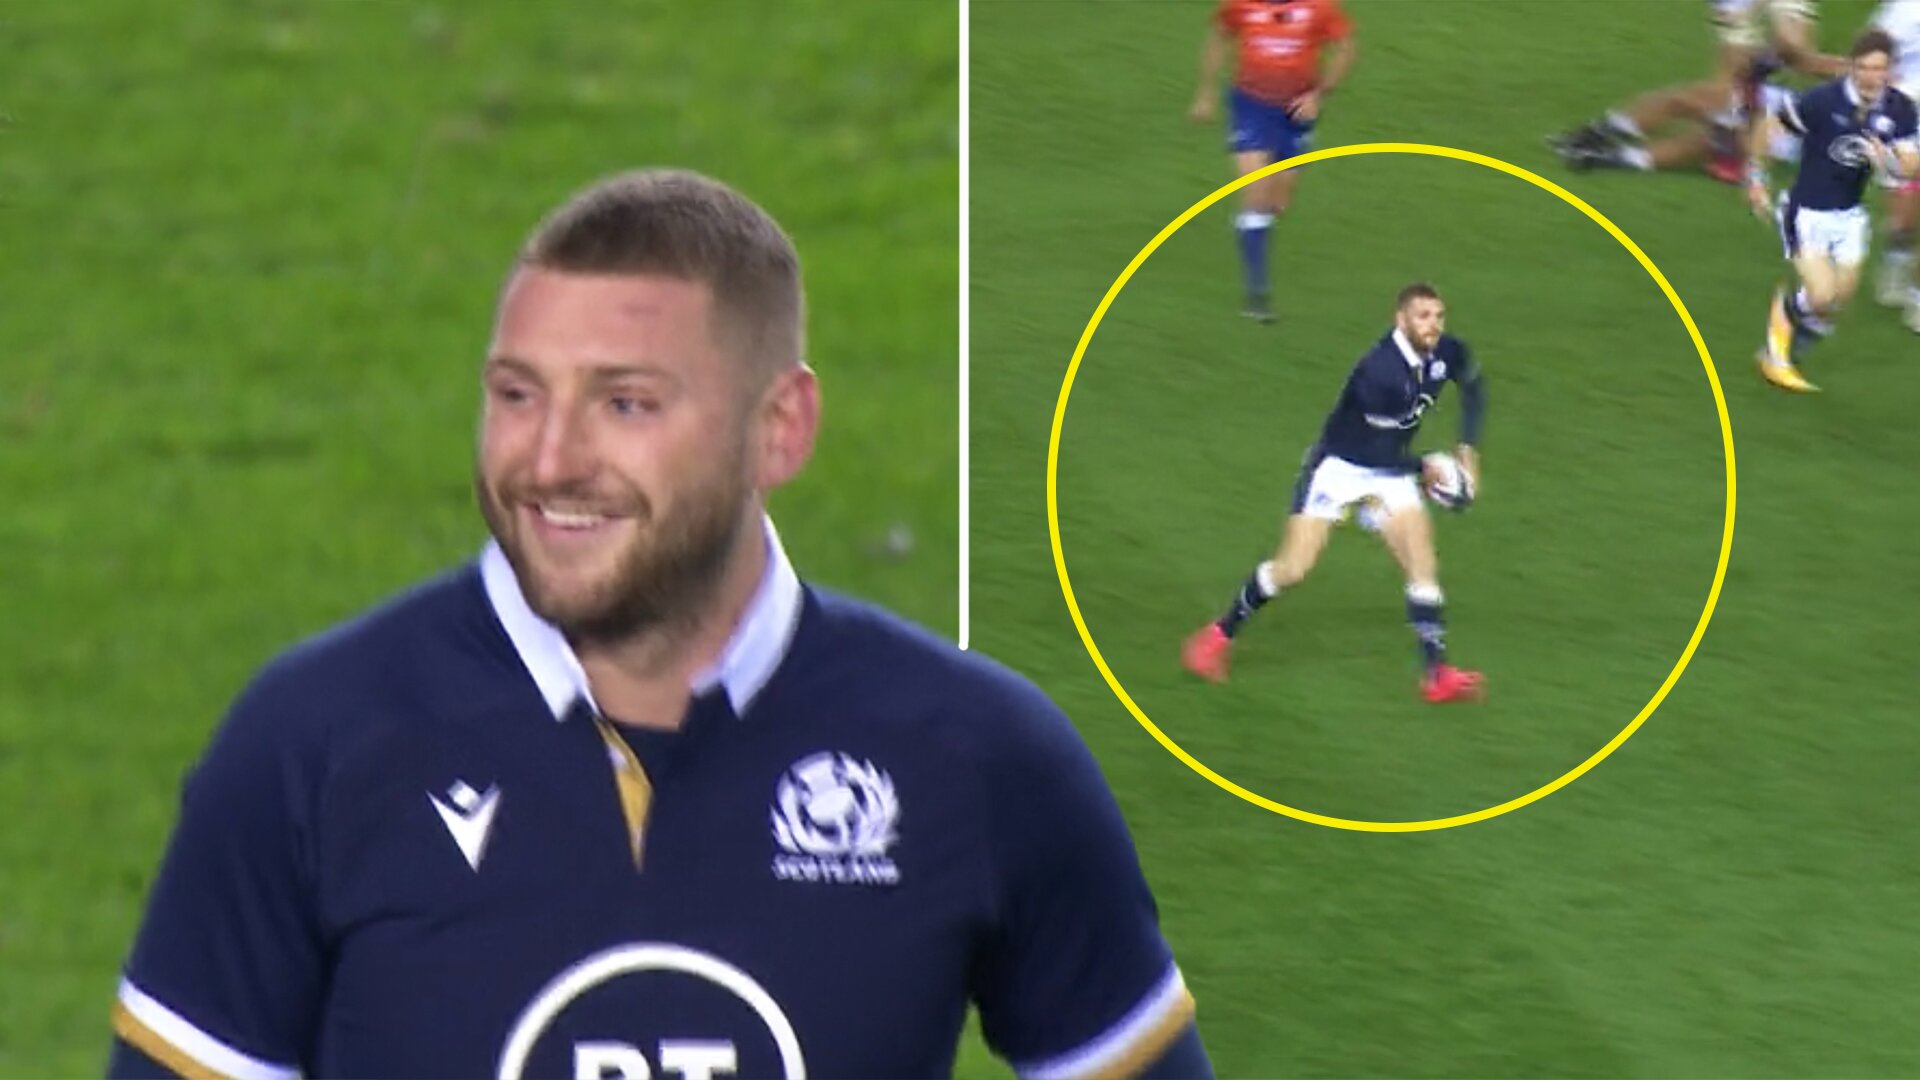 Finn Russell comes on for just twenty minutes and single handedly dismantles sorry Georgia